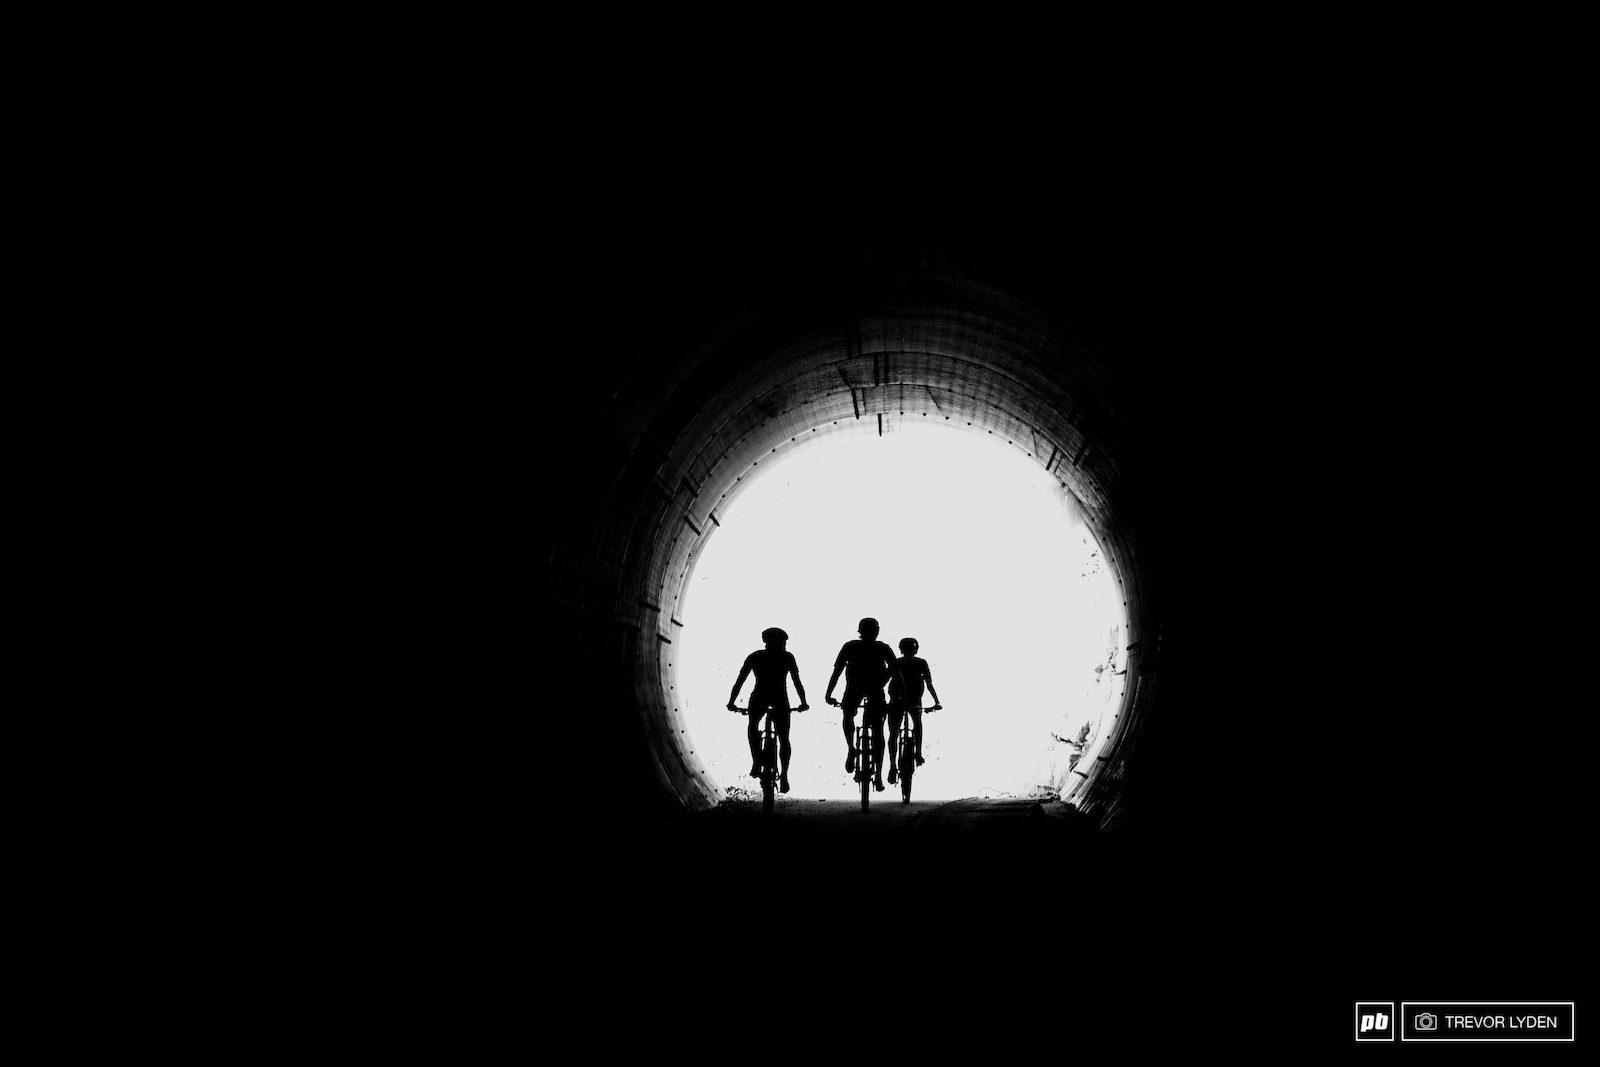 Tunnel riding through town on the way to the local trails.